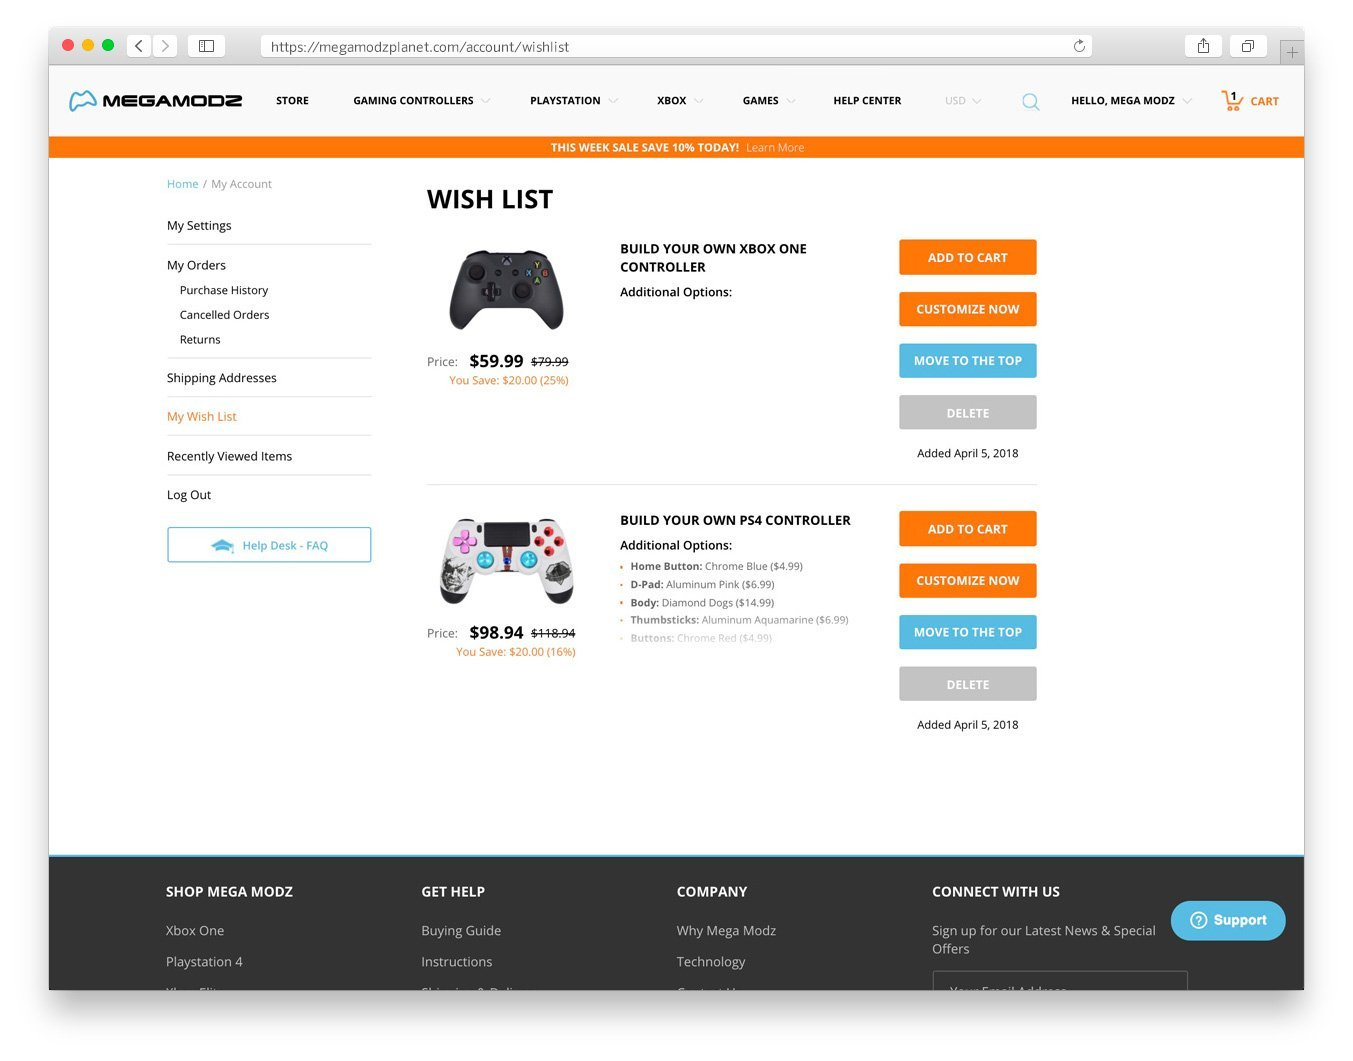 Desktop Wish List Screenshot for Custom Controllers Article